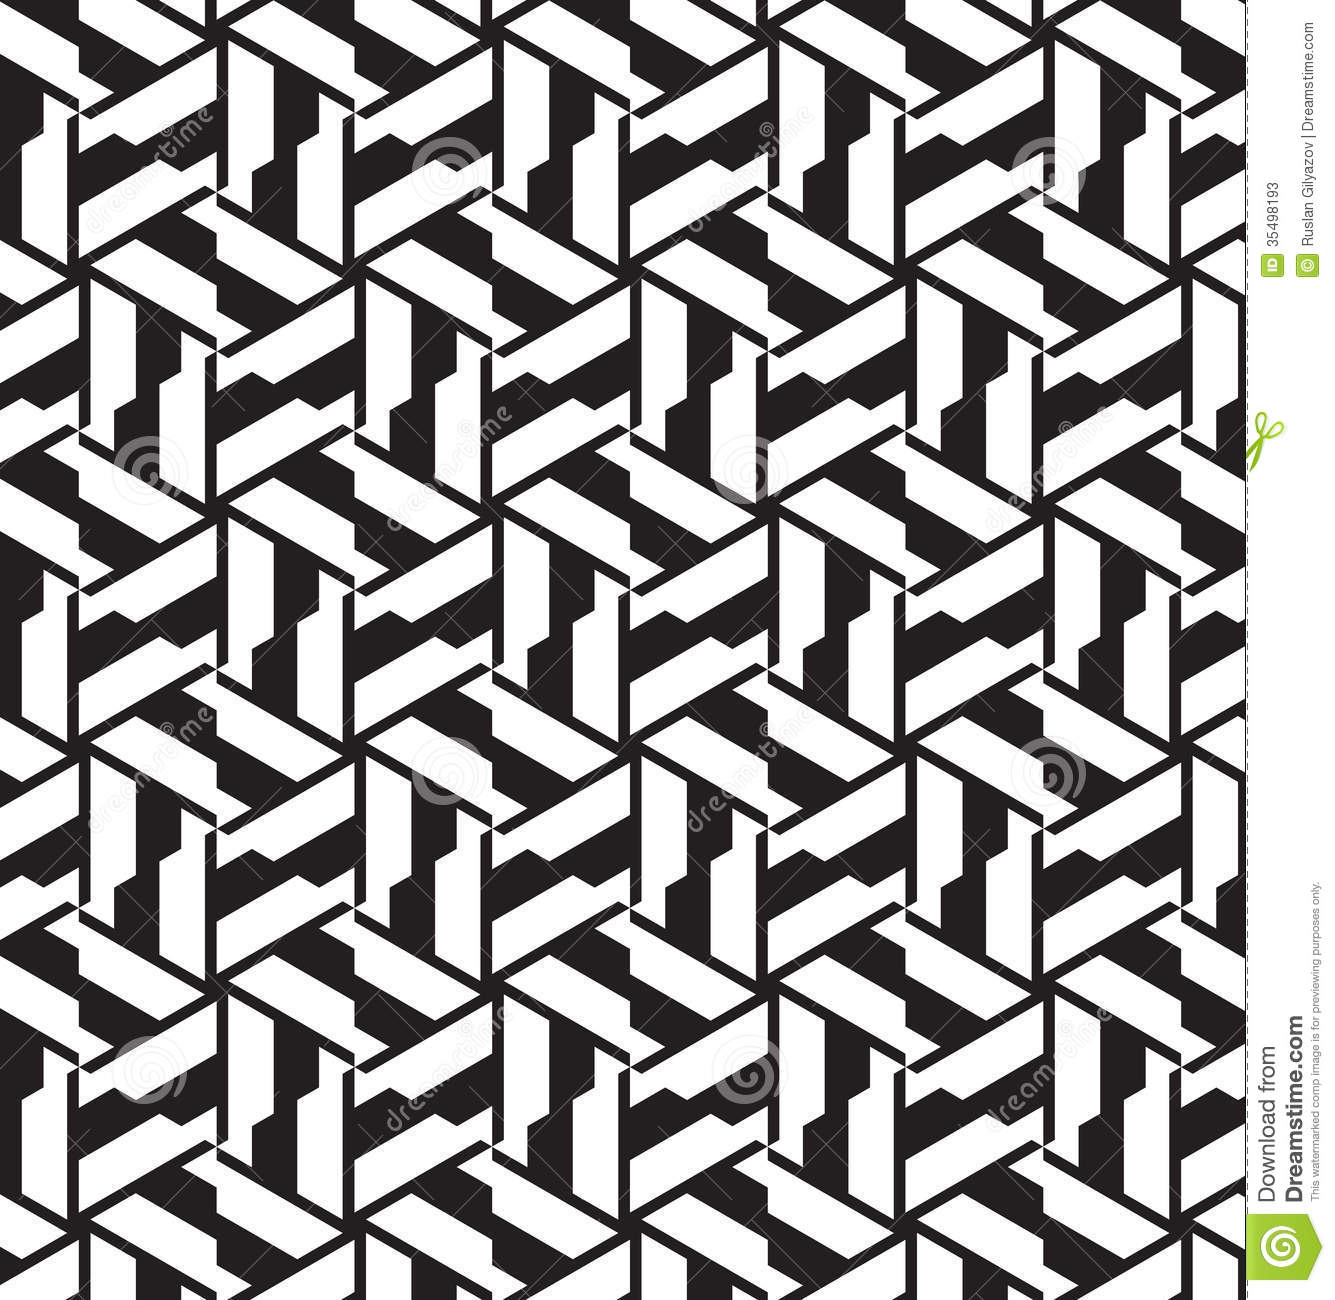 Art Patterns And Designs #21